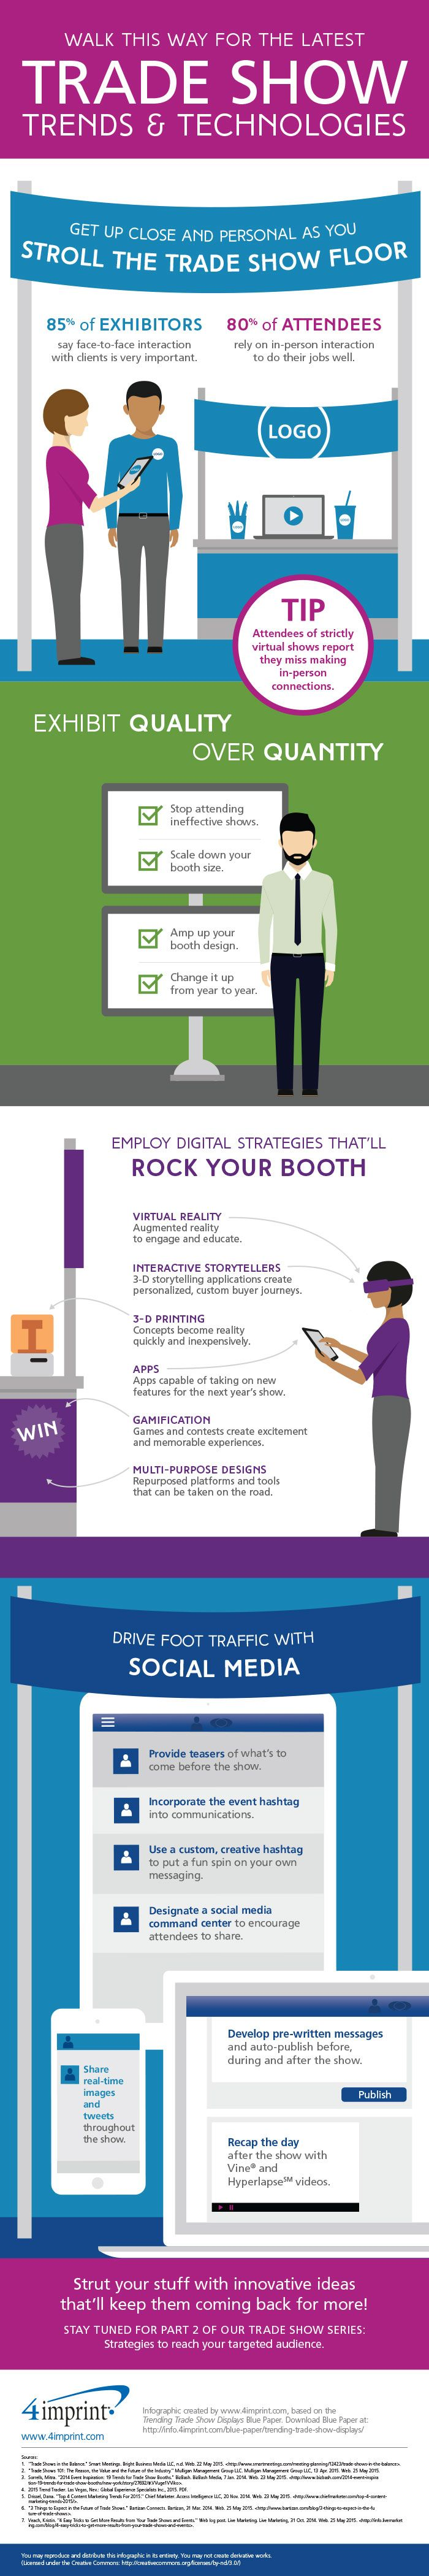 We have everything you need to outfit your tradeshow booth!